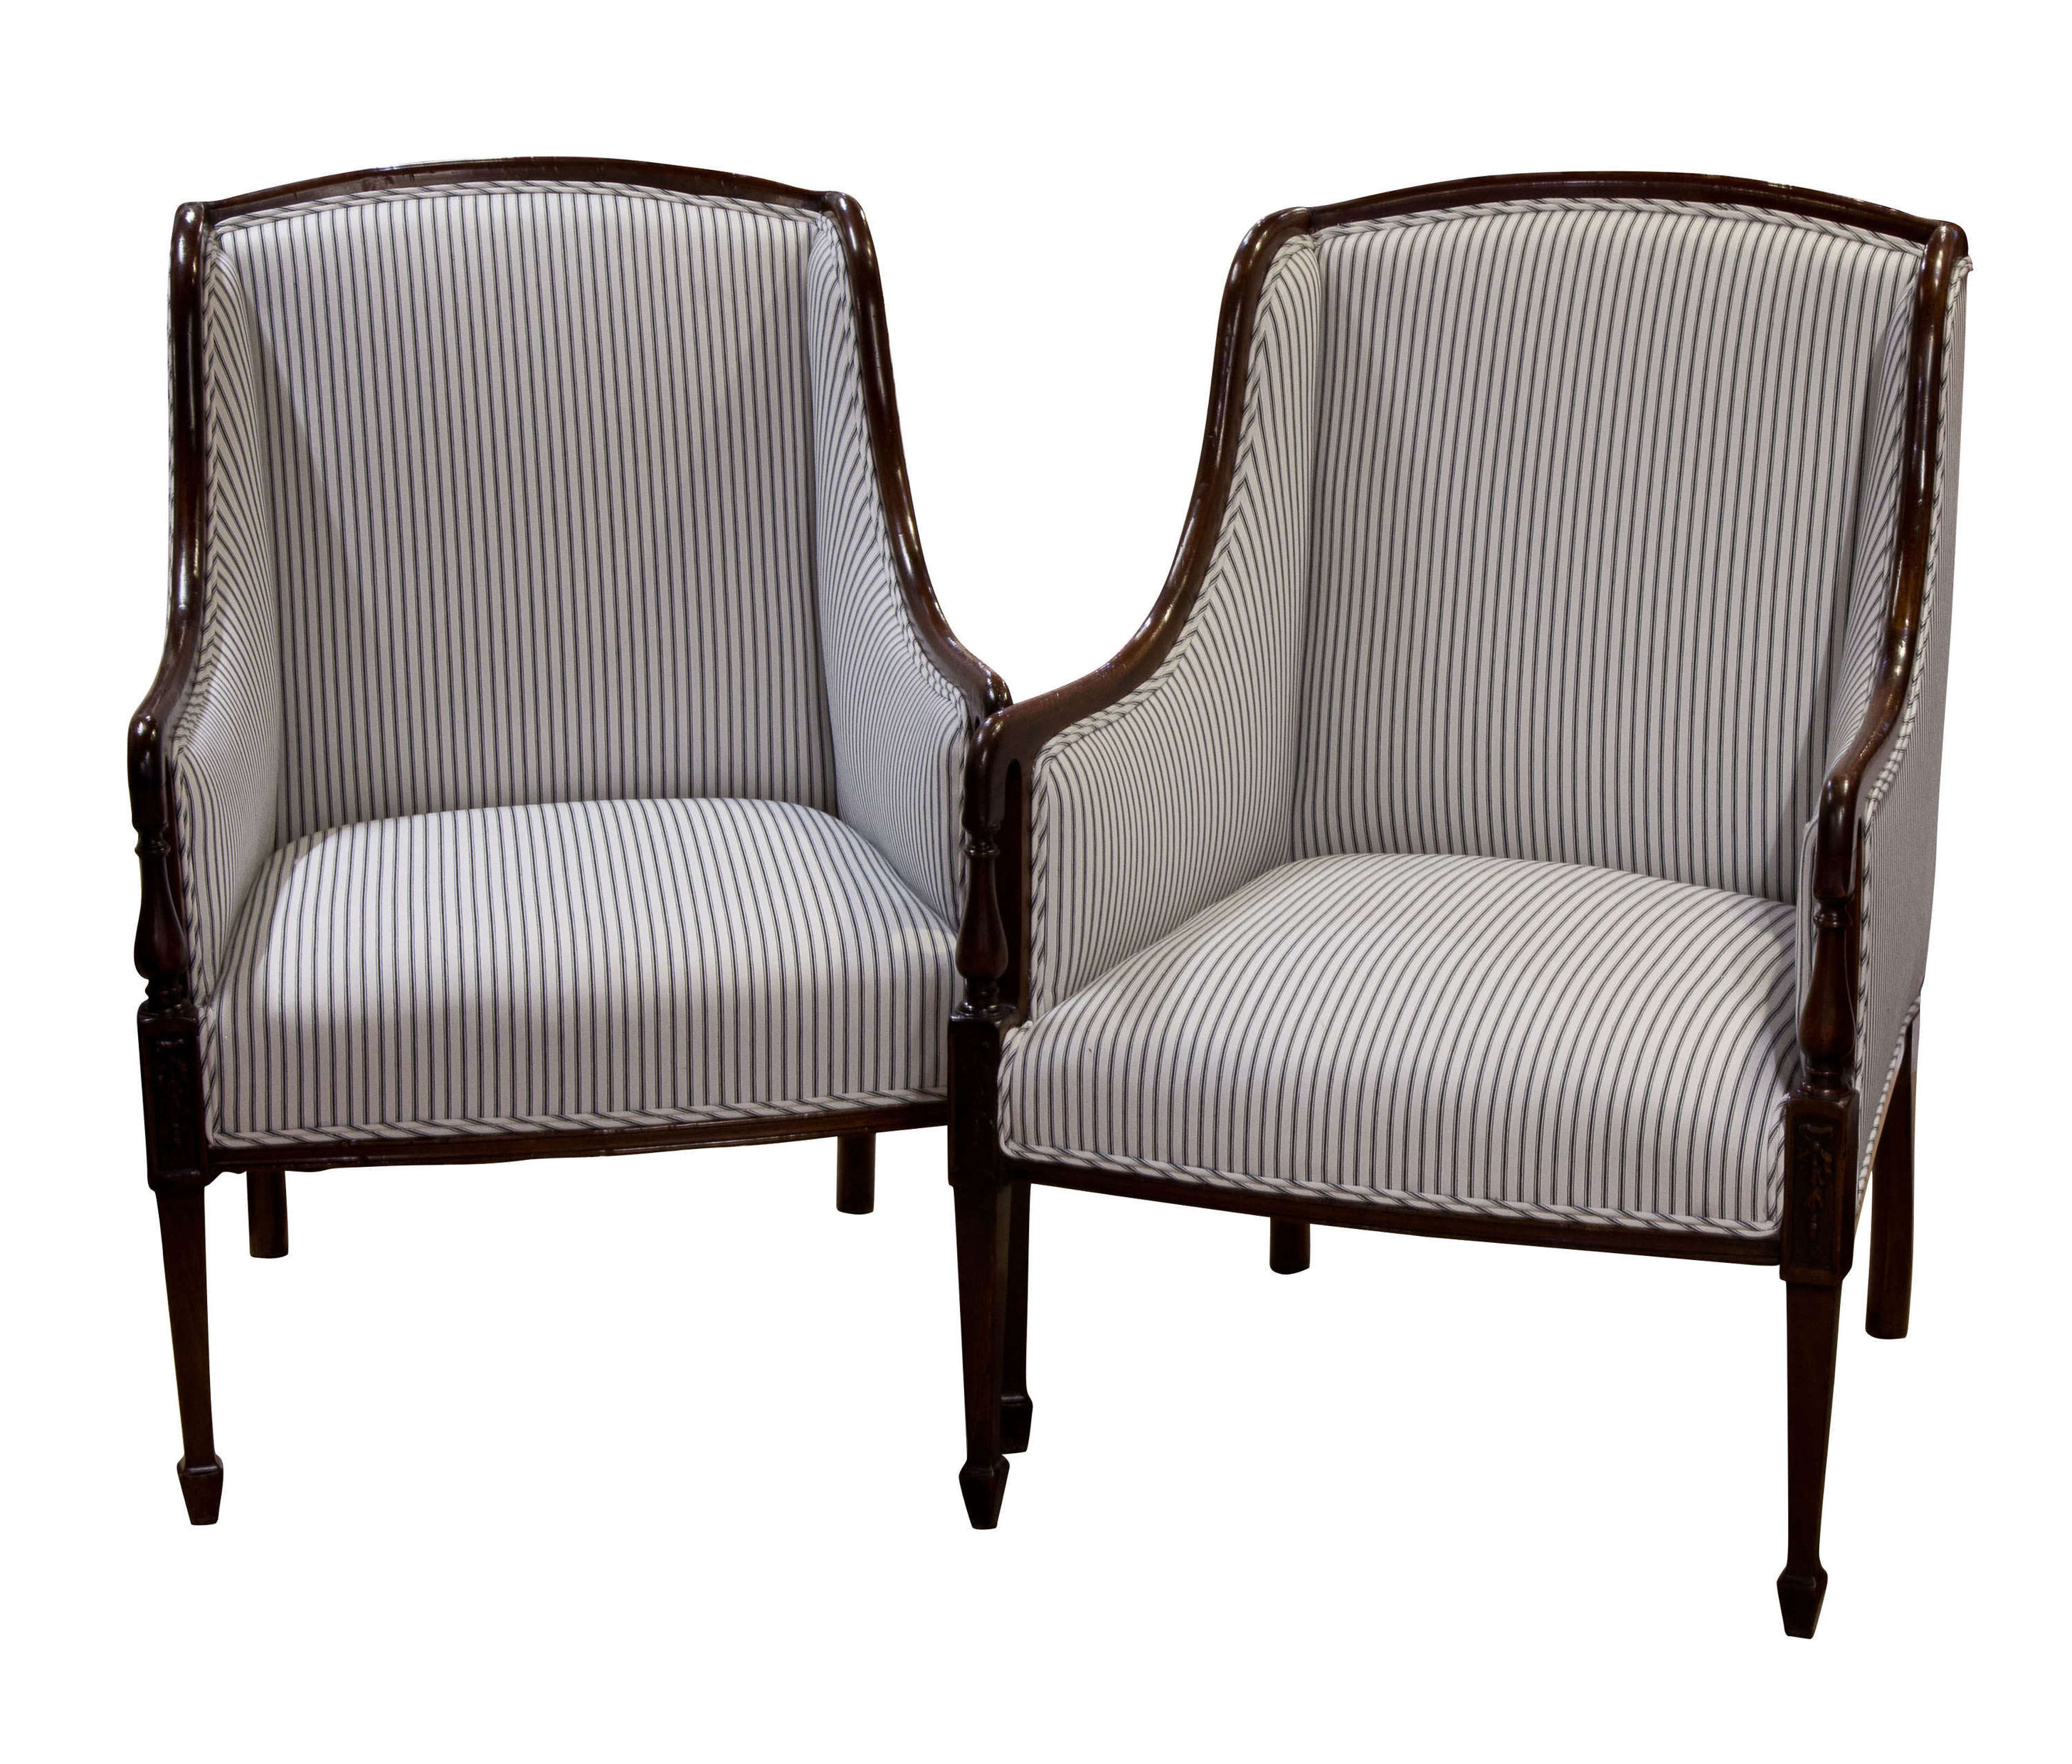 Pair of Edwardian library chairs